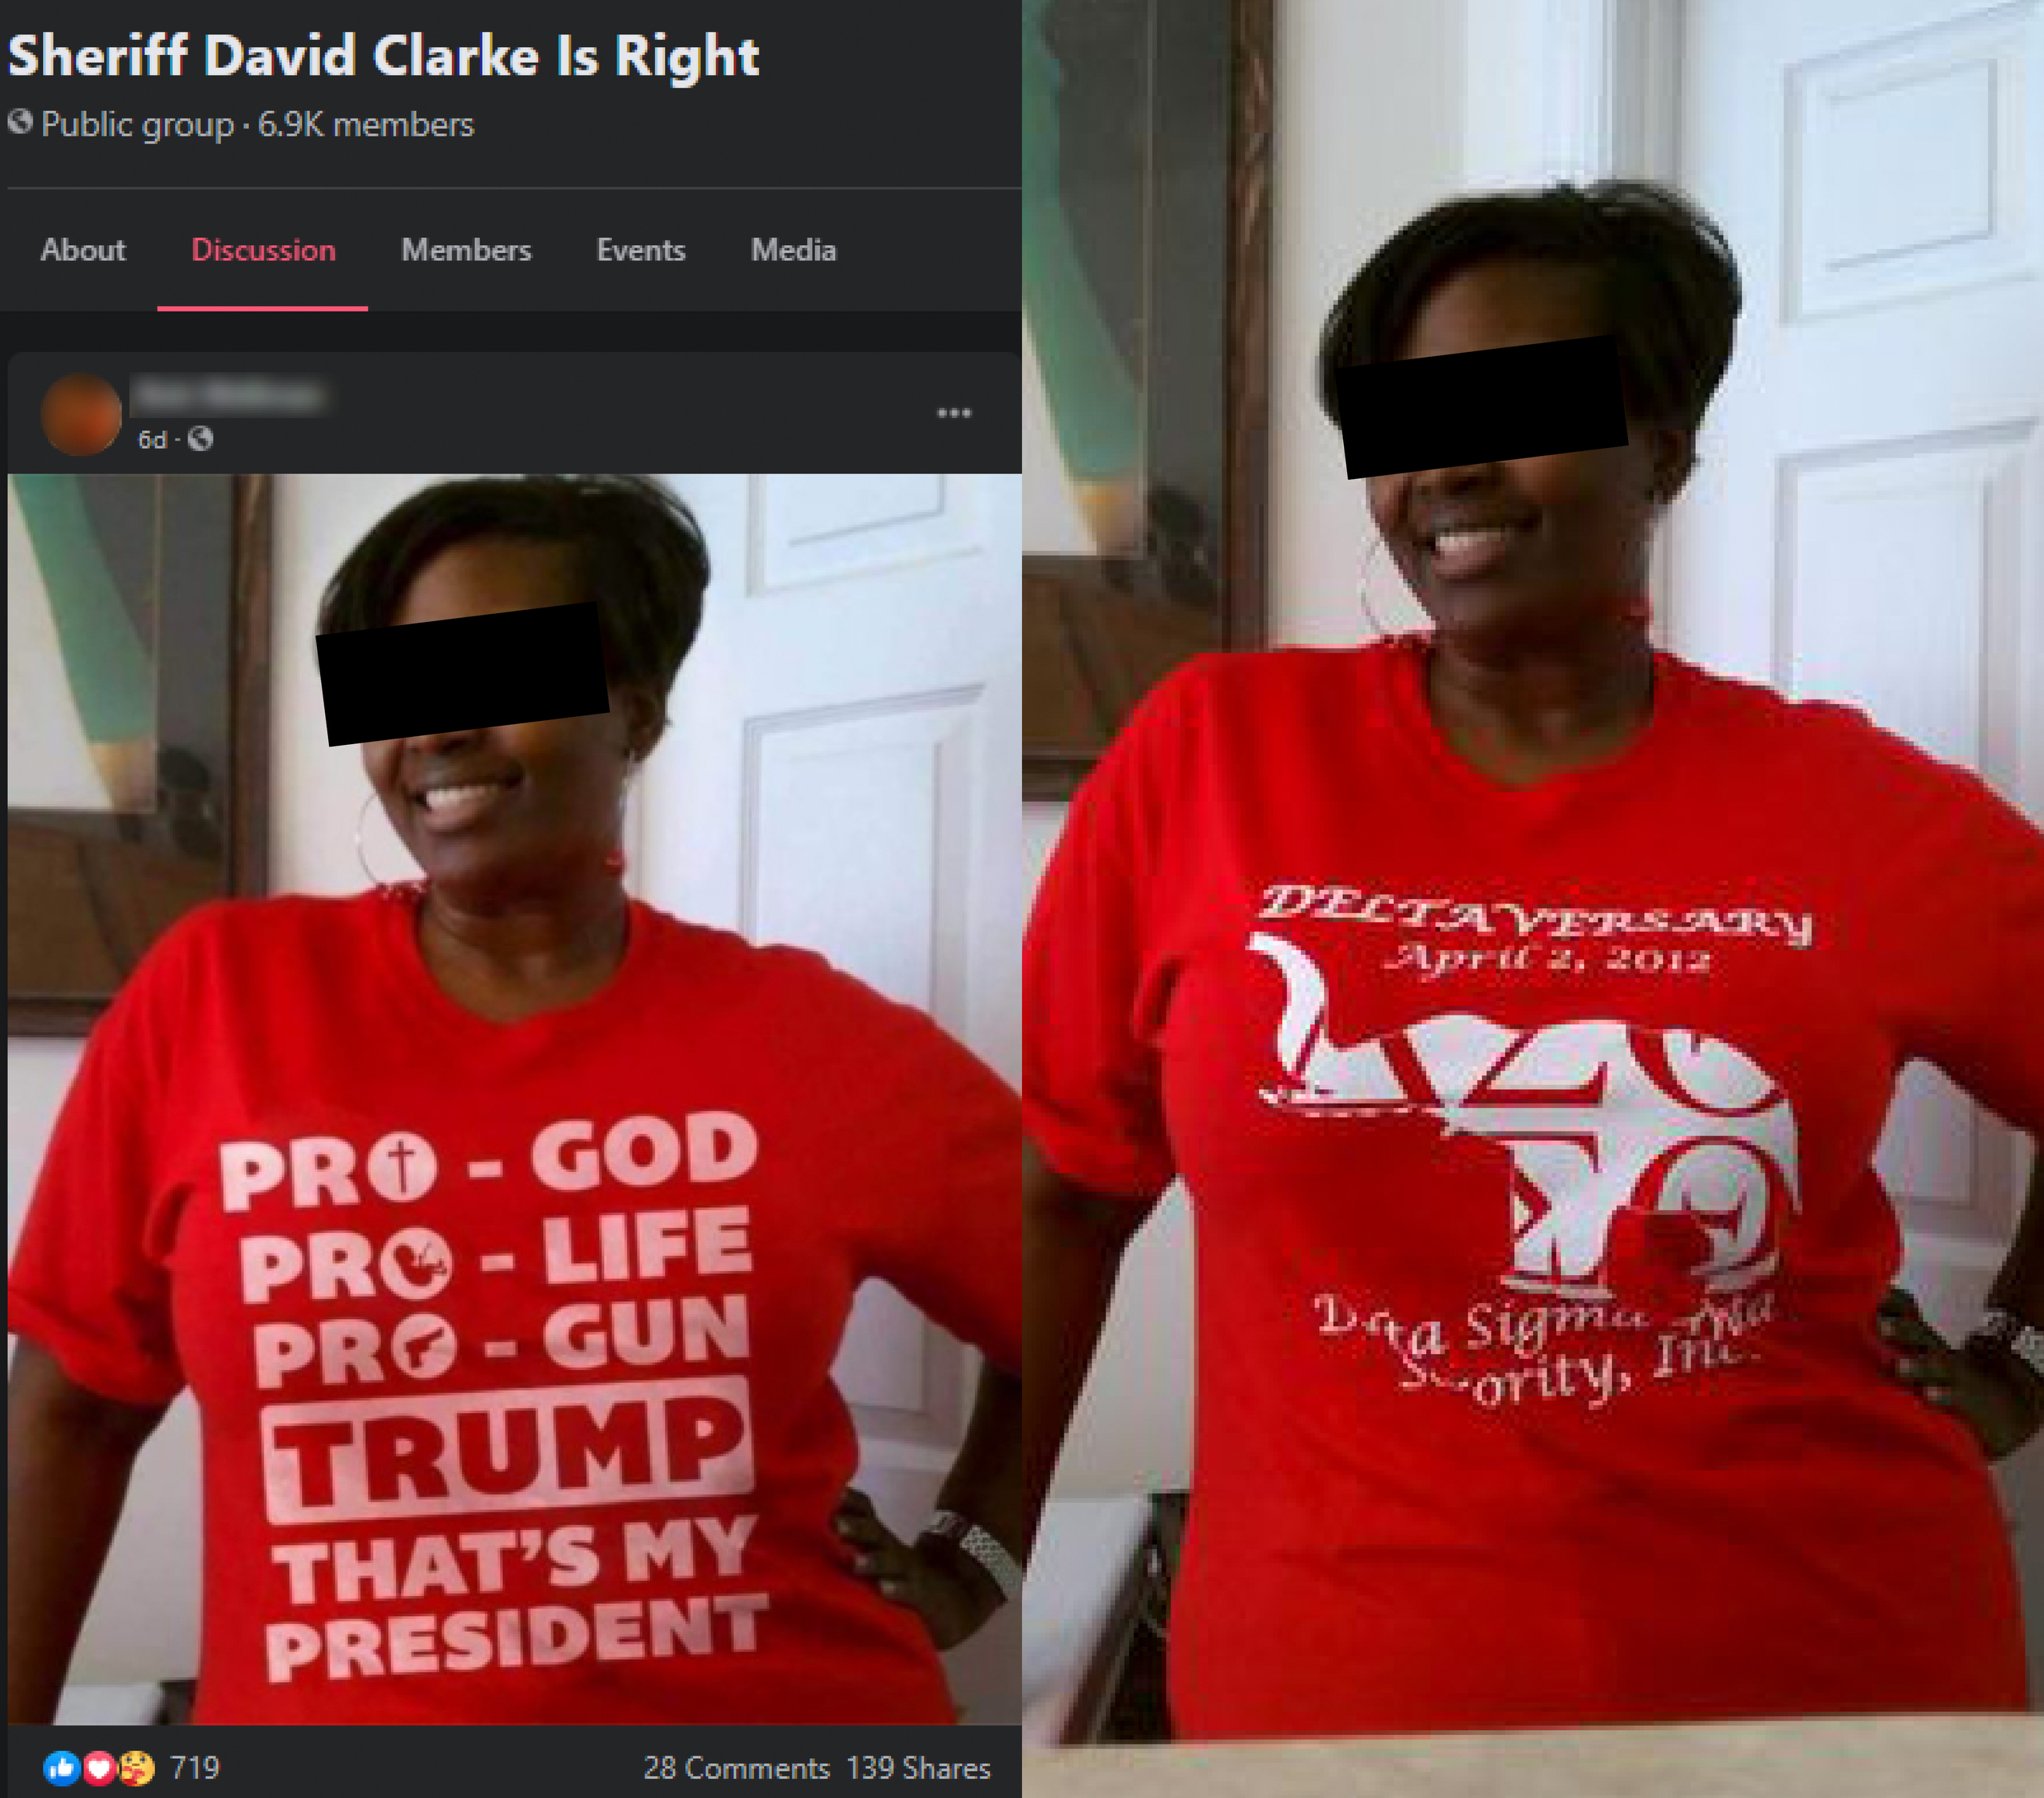 This image of a woman seemingly wearing a pro-Trump T-shirt appeared in the public Facebook group Sheriff David Clarke Is Right. But a reverse-image search shows that the text was digitally imposed onto her clothing. Wisconsin Watch has blurred the profile name of the Facebook user and obscured the identity of the woman pictured.